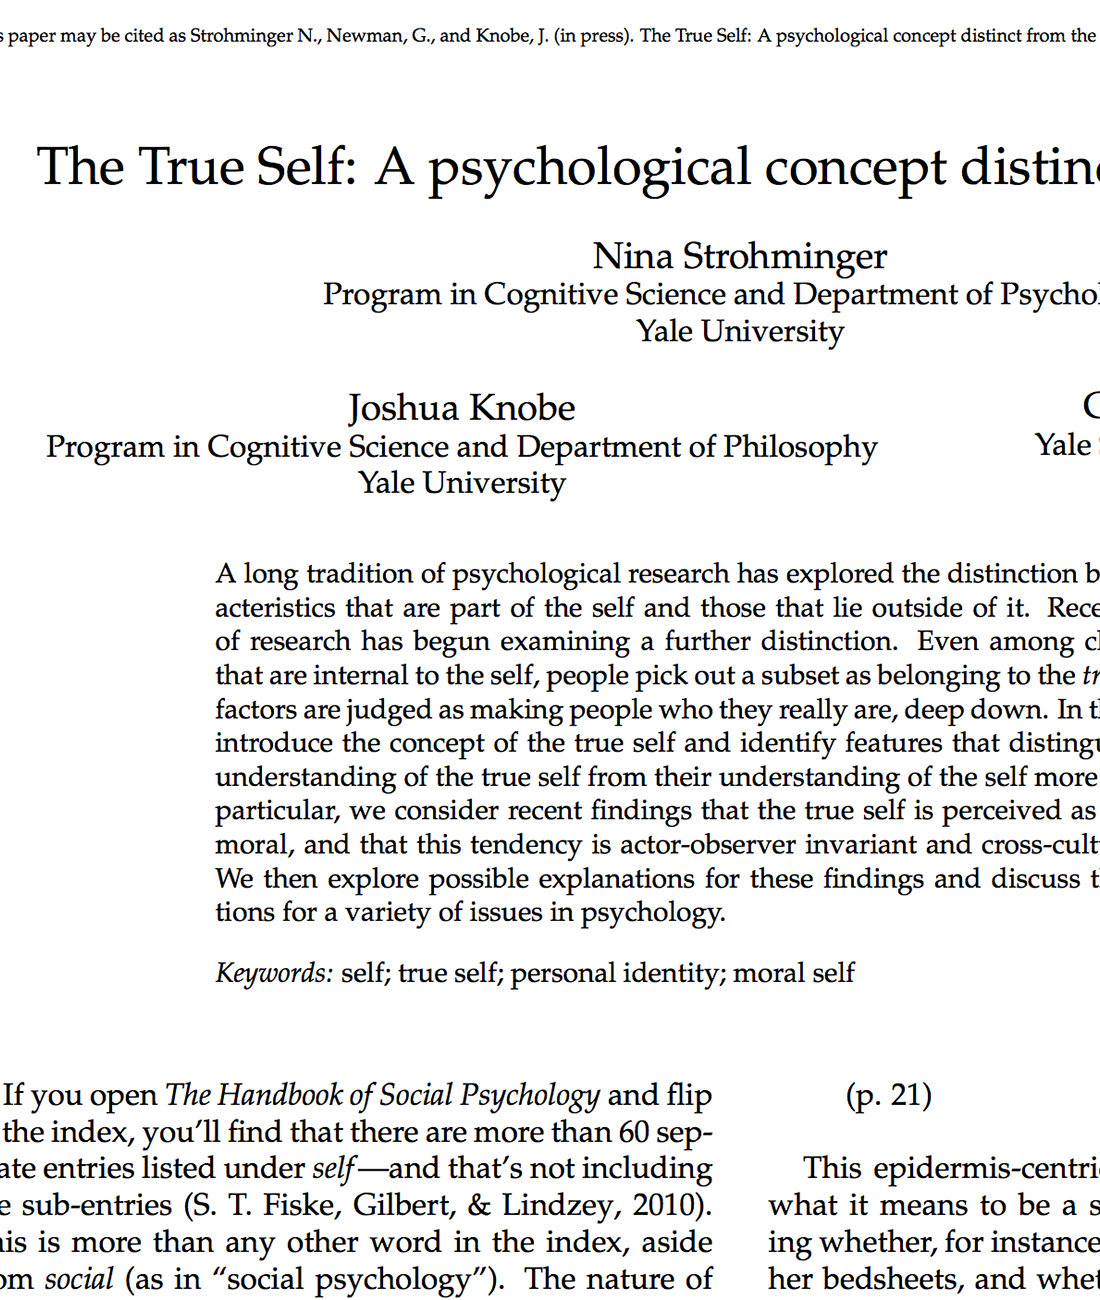 Strohminger N., Newman, G., and Knobe, J. (2017). The True Self: A psychological concept distinct from the self. Perspectives on Psychological Science, 1  2, 551-560.